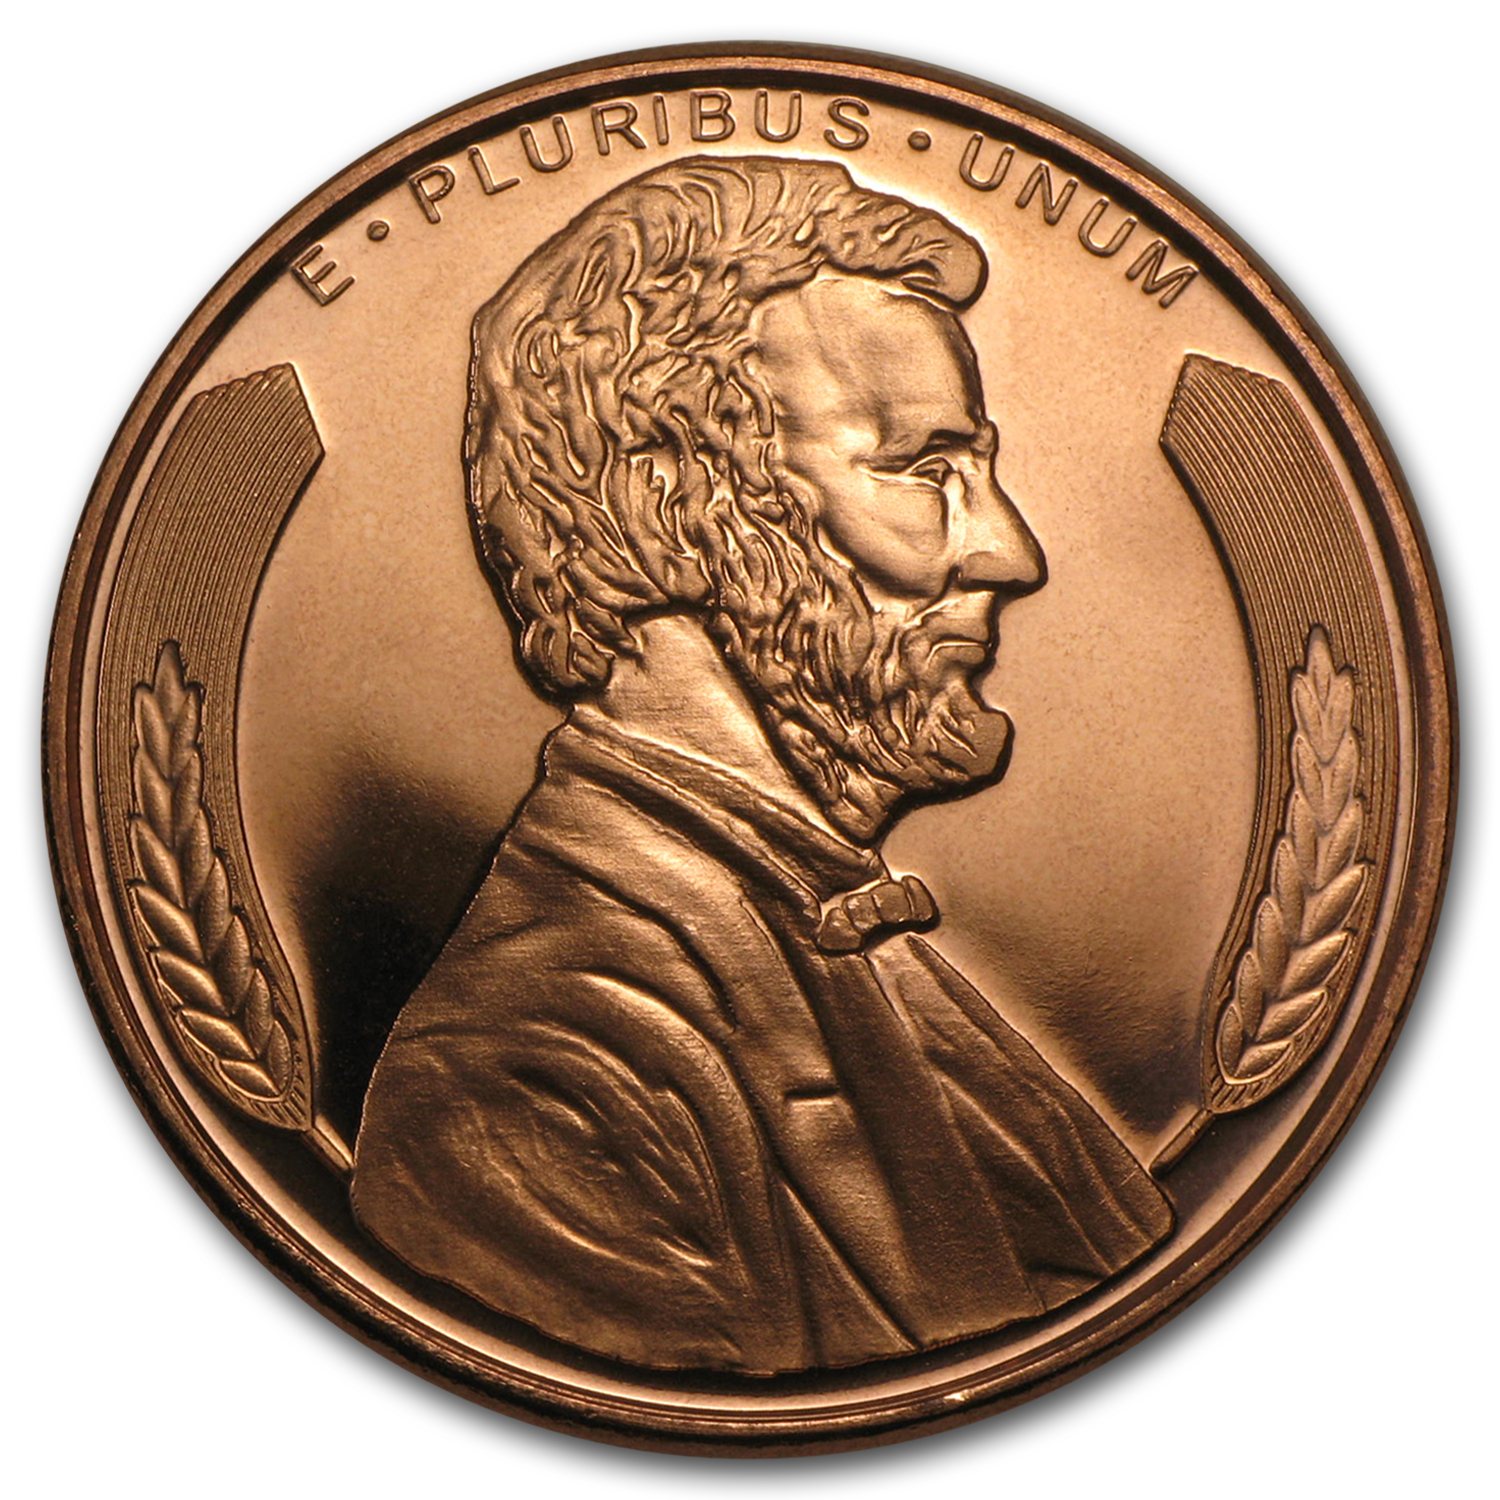 1 oz Copper Round - Lincoln Bust